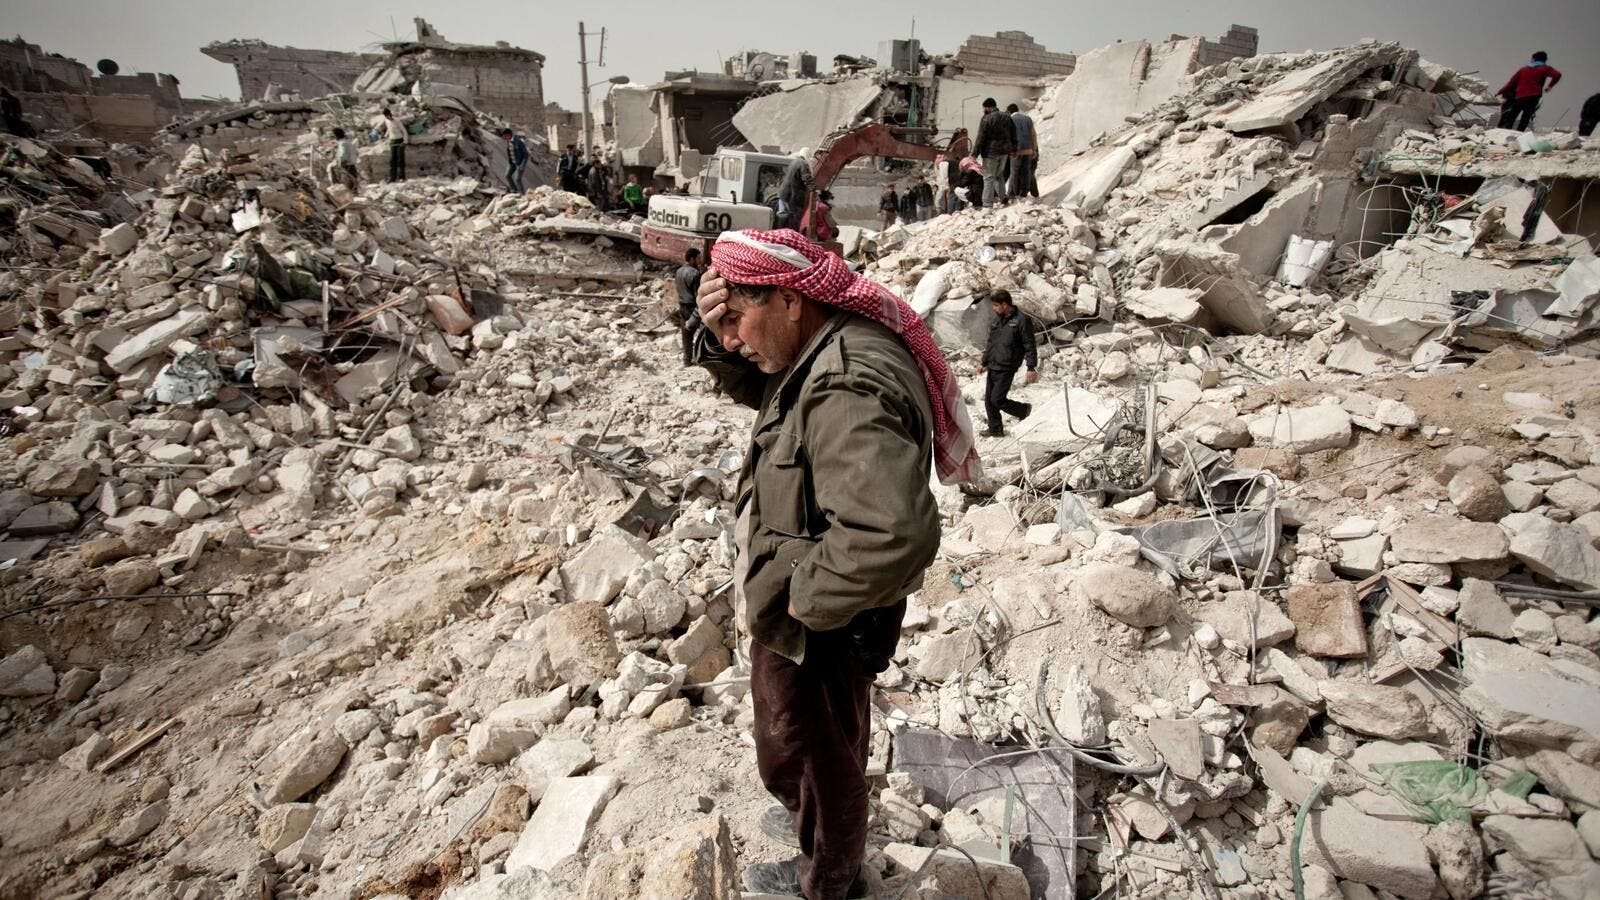 A Syrian man stands over the rubble of his house in Aleppo on February 23, 2013.  (AFP/Pablo Tosco)